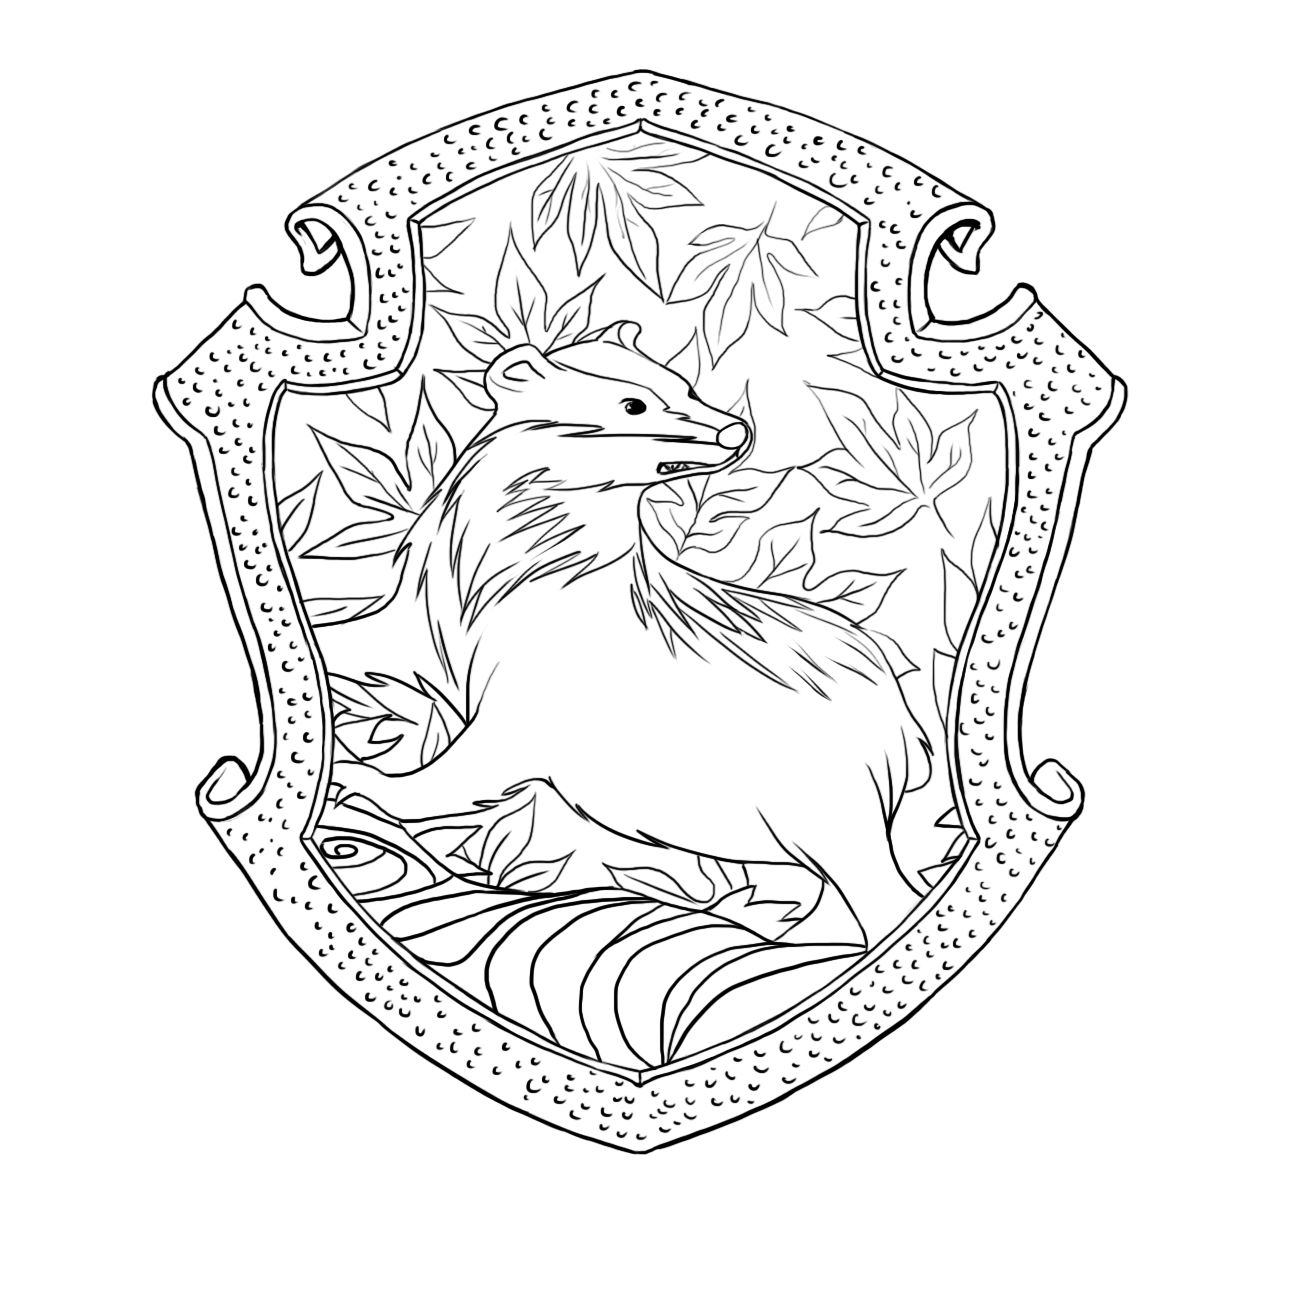 hufflepuff crest pottermore